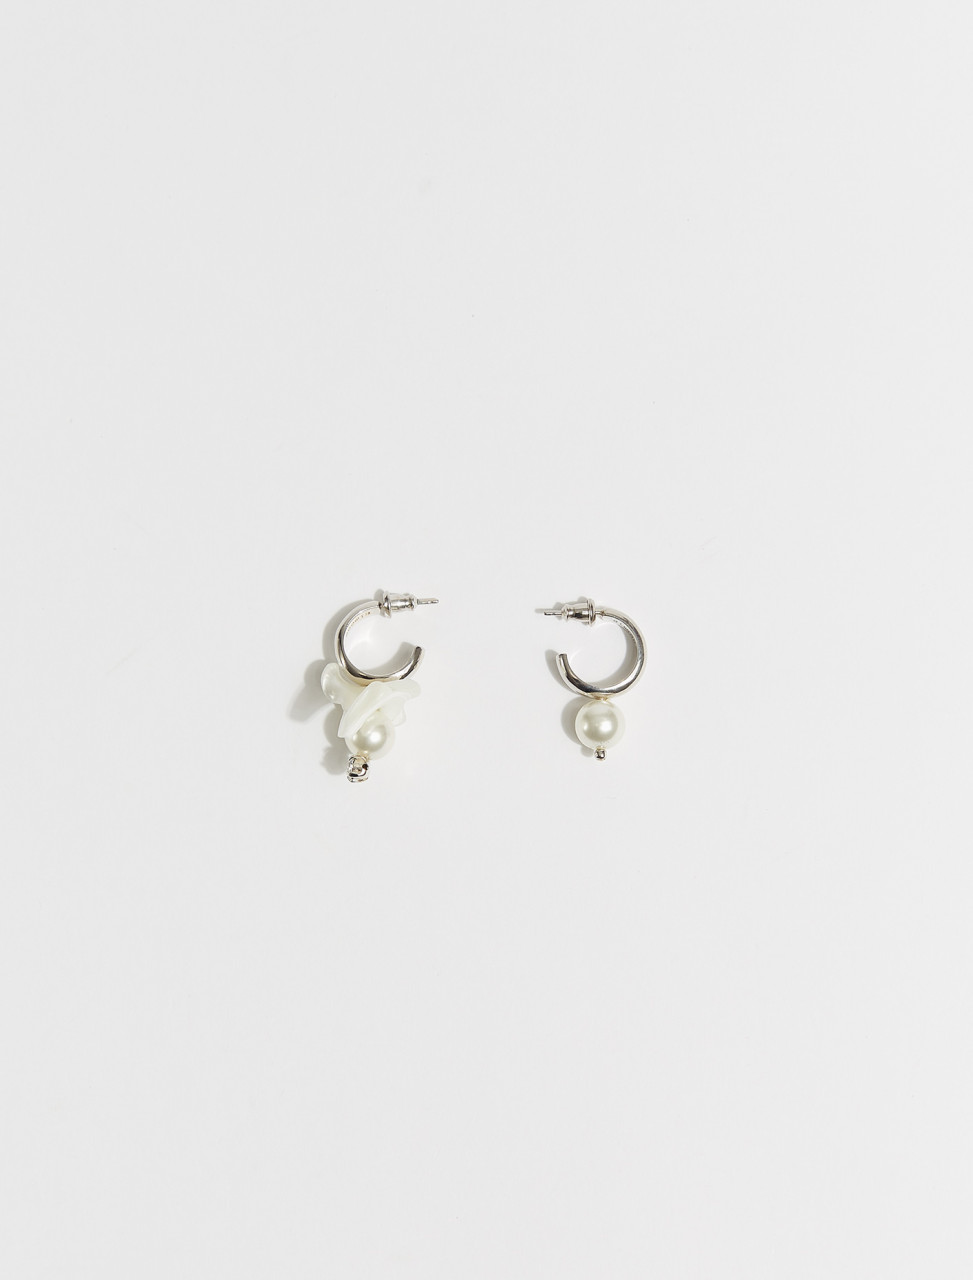 ERG250-0906 SIMONE ROCHA MIX MATCH MOTHER OF PEARL HOOP EARRING PEARL CLEAR